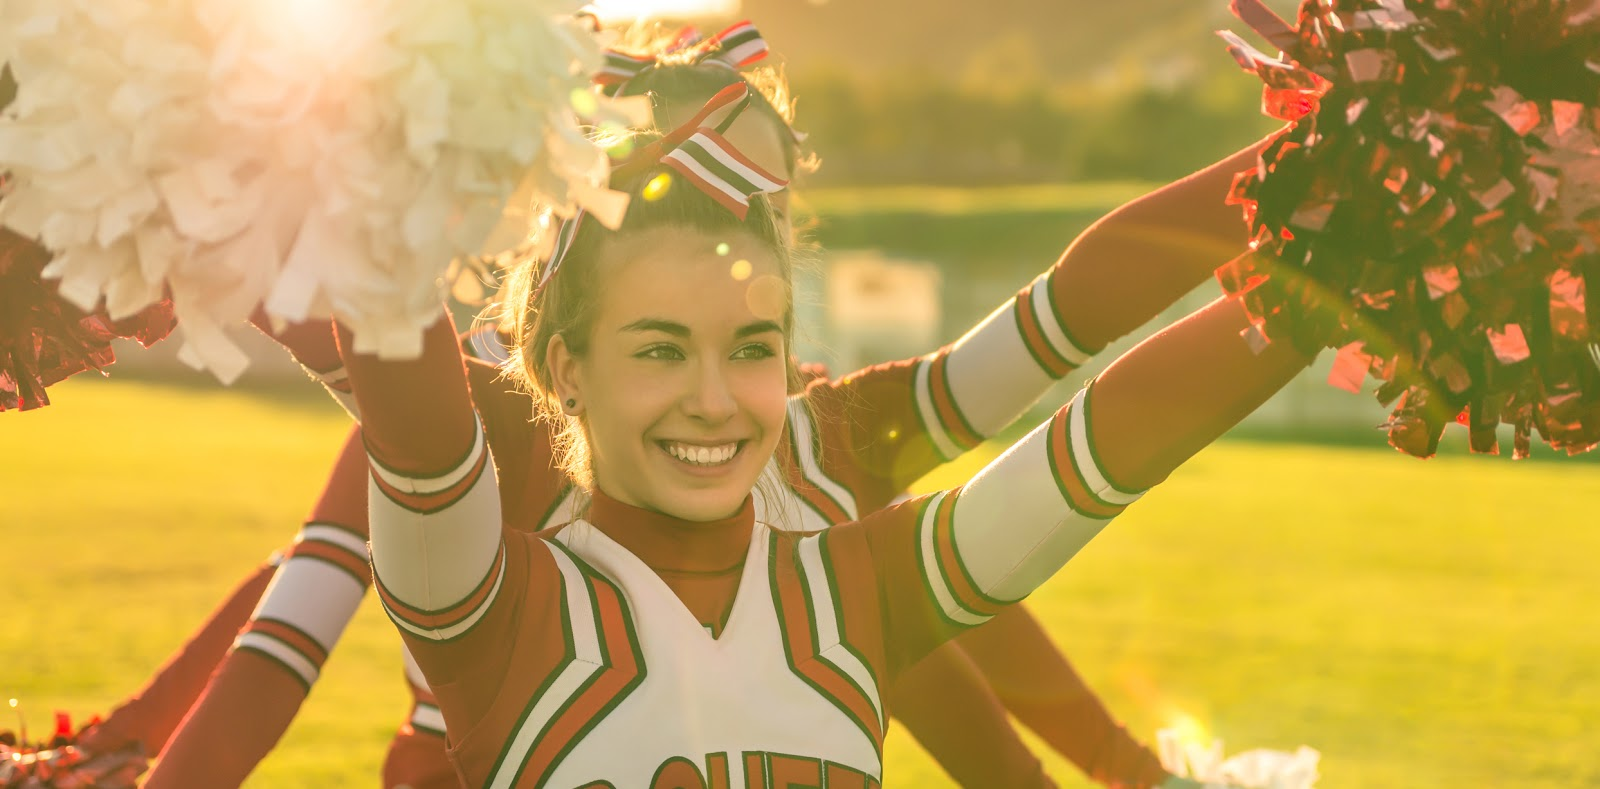 Smiling cheerleader with poms.